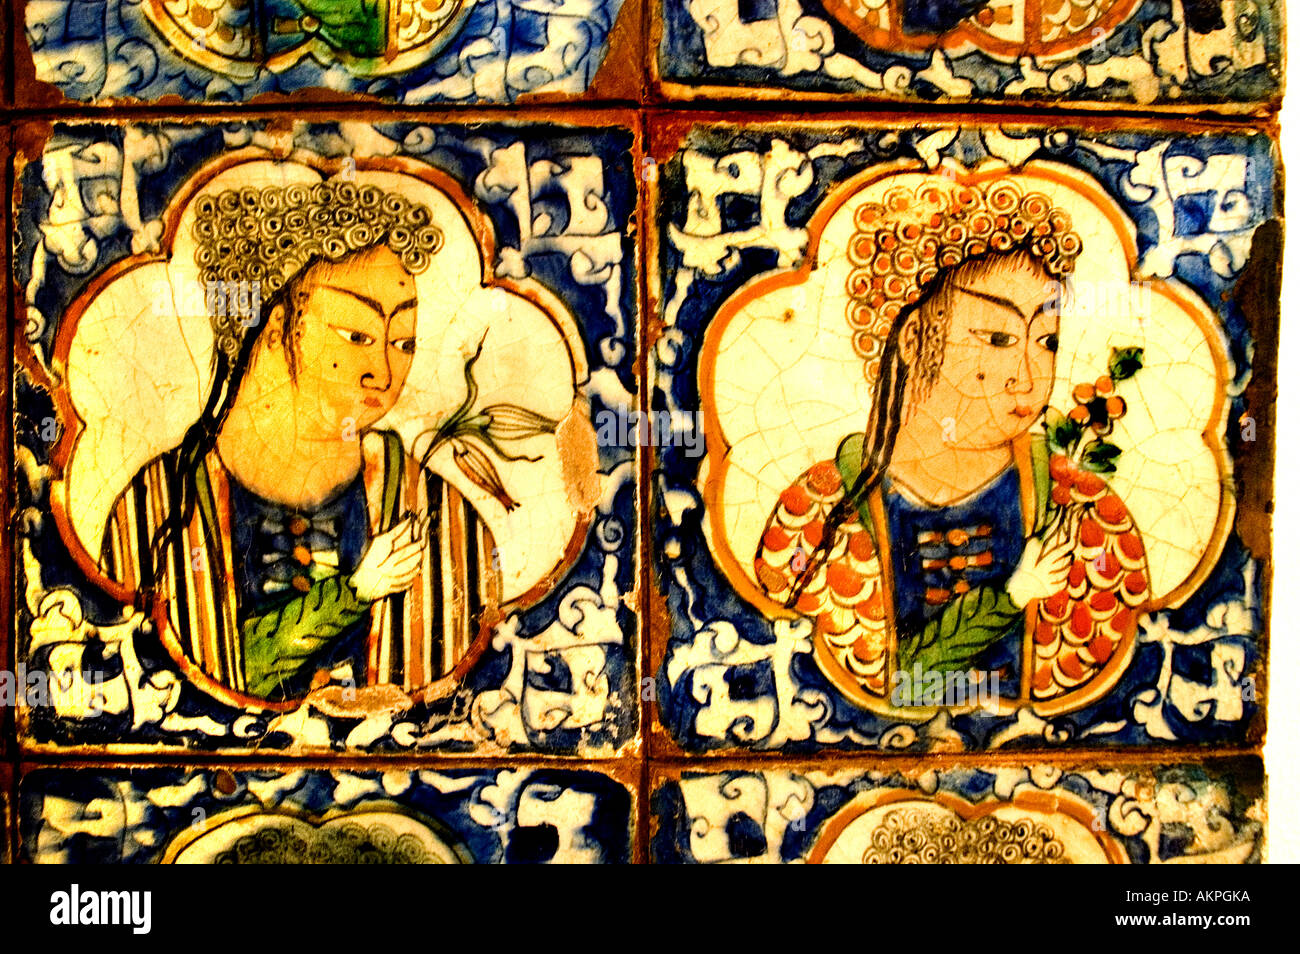 Iranian Art Stock Photos & Iranian Art Stock Images - Alamy